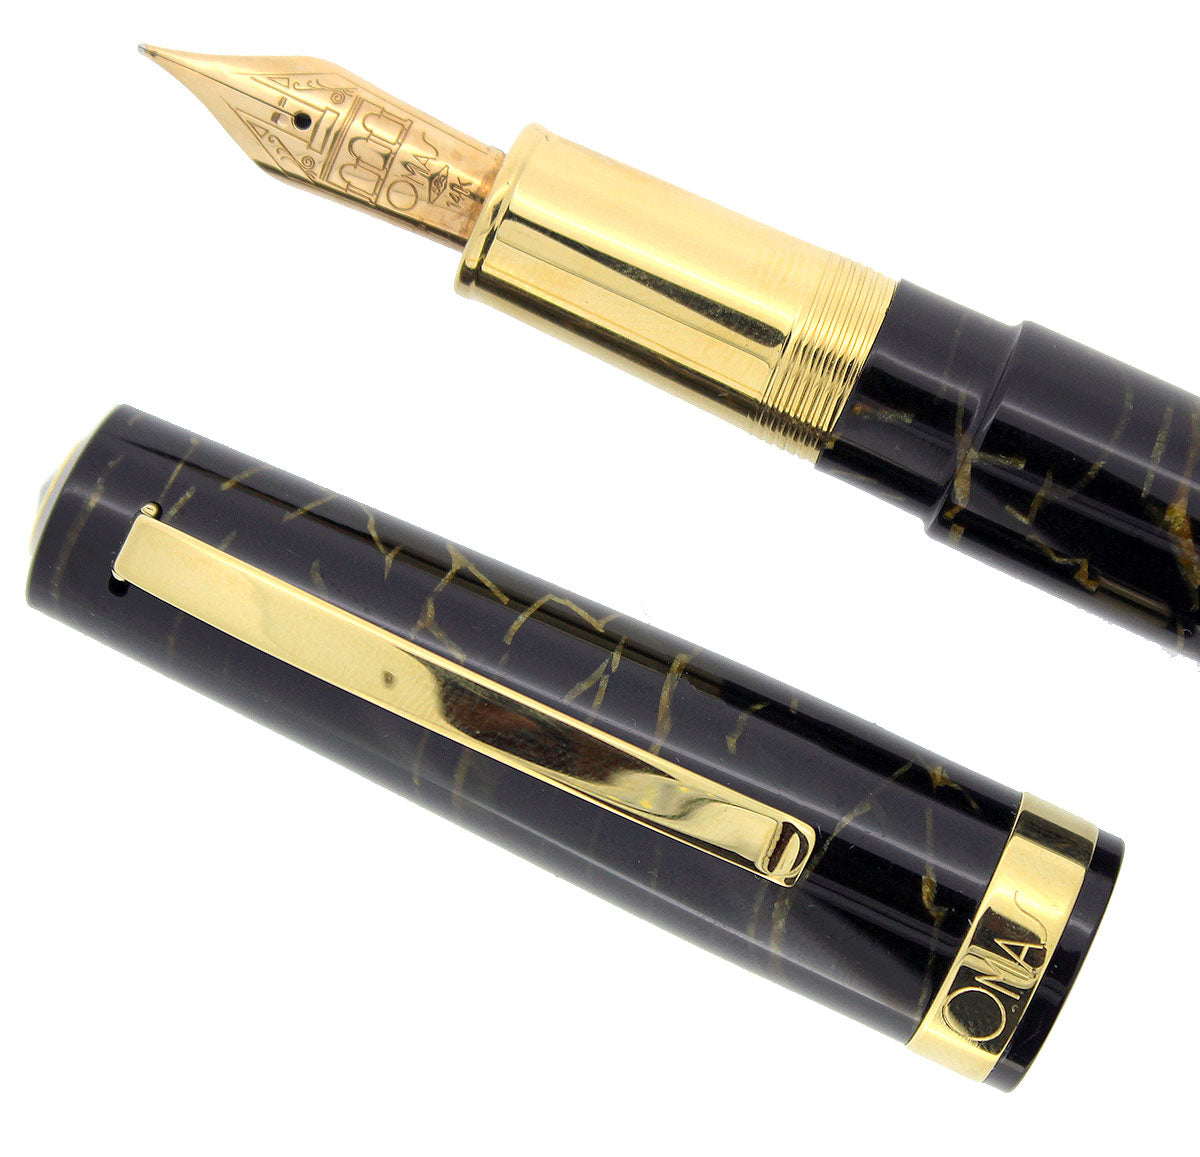 OMAS BOLOGNA CELLULOID BLACK AND GOLD FOUNTAIN PEN MINT IN BOX 14K NIB NOS OFFERED BY ANTIQUE DIGGER